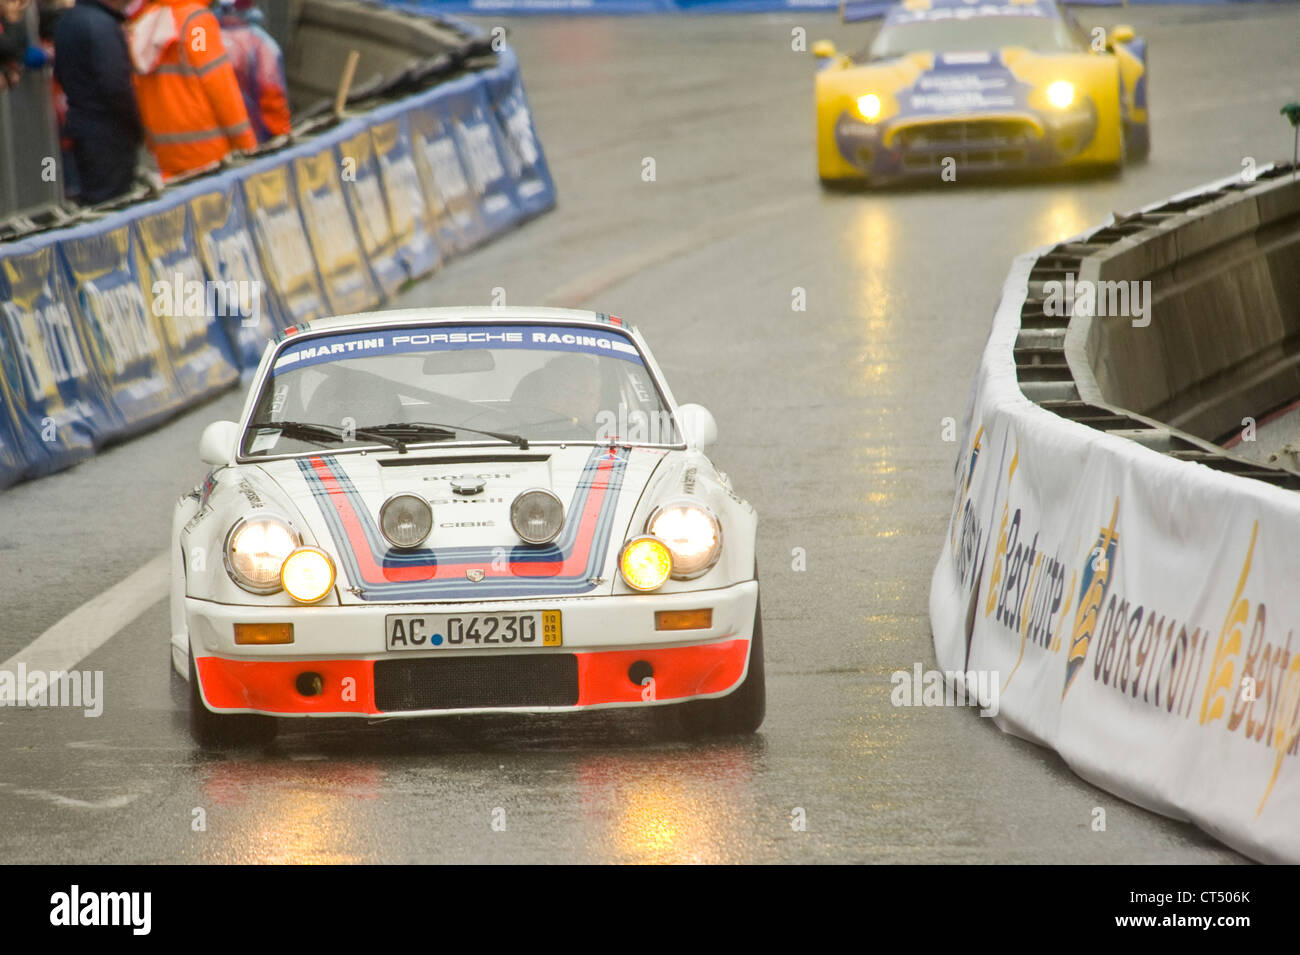 The Porsche 911 RSR (Martini Racing) on the track of the Dublin